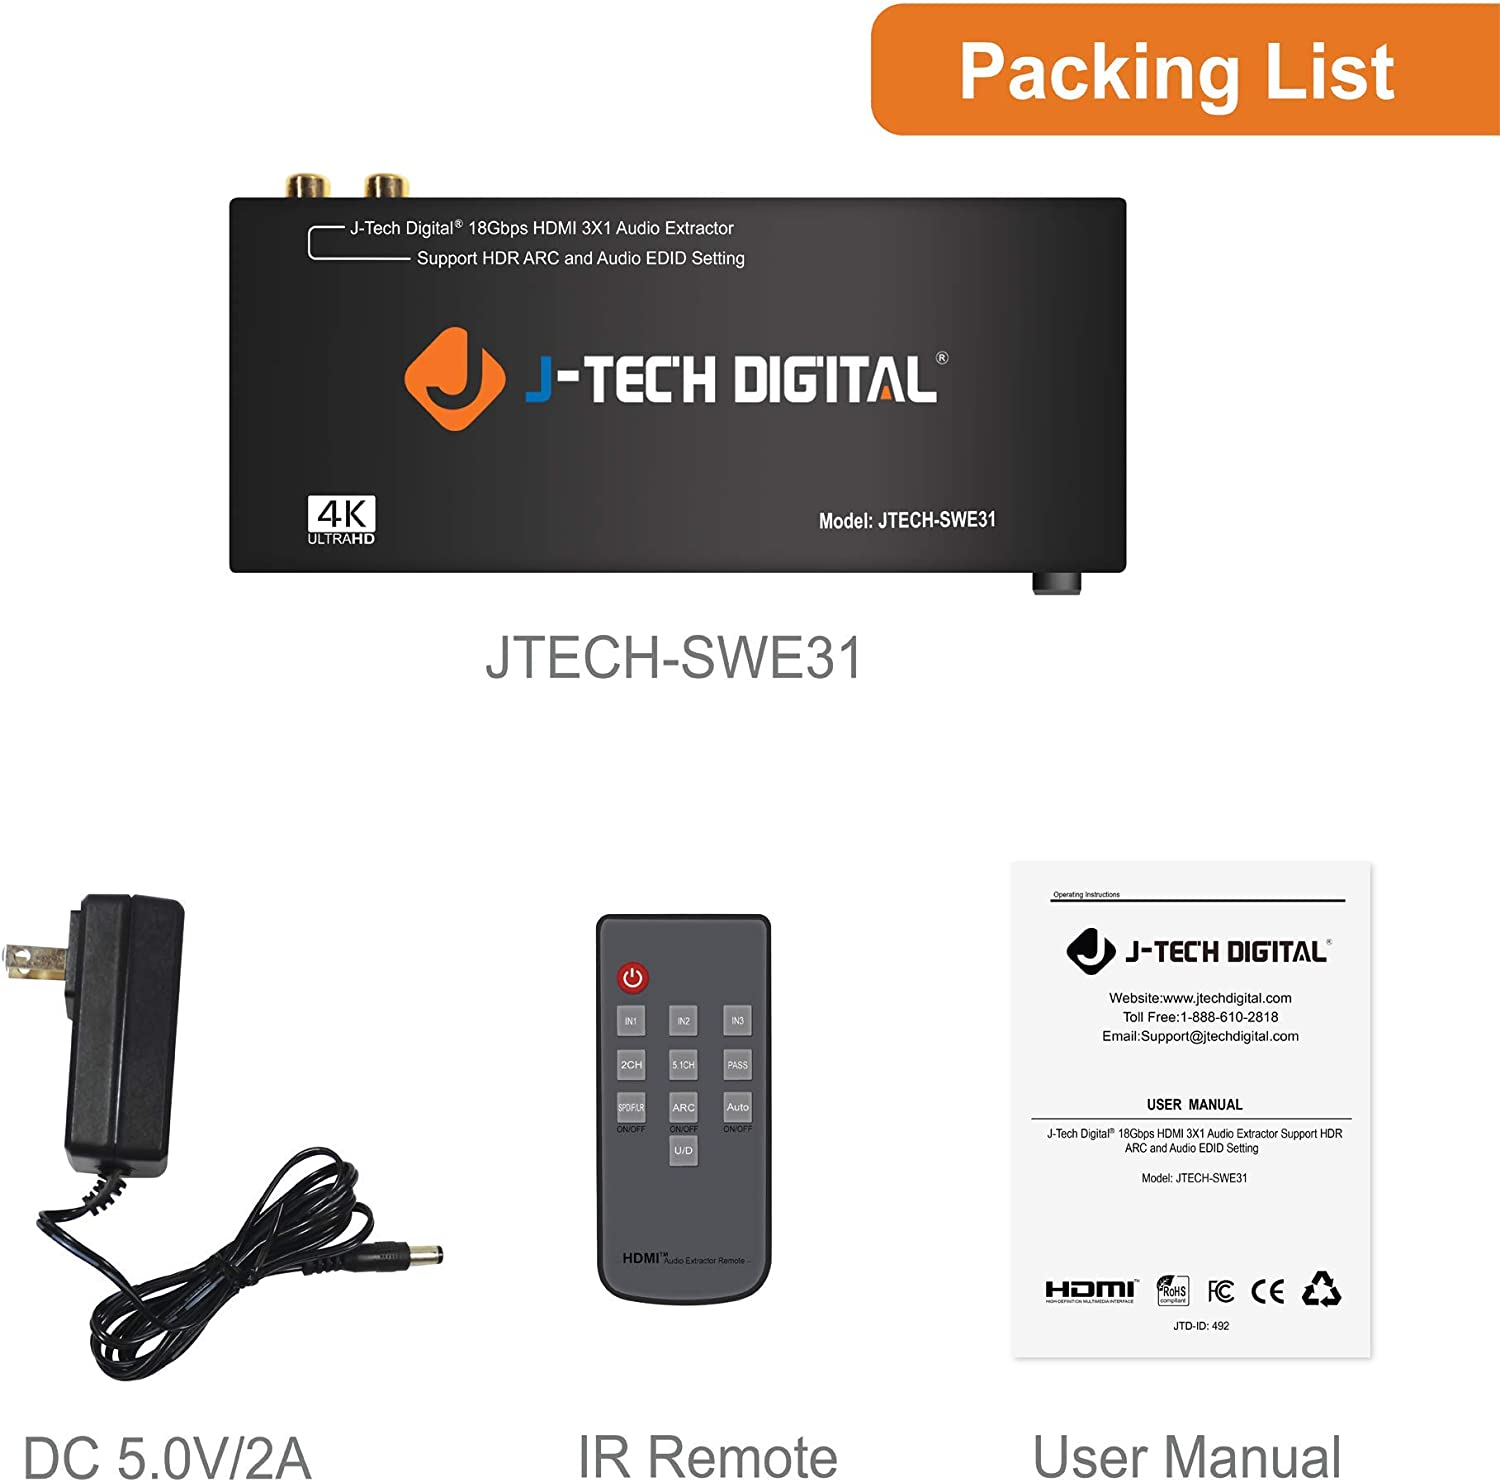 J-Tech Digital 5 Port HDMI Switch /& Audio Extractor SPDIF Jack Stereo Outputs with Ultra HD 4K ARC EDID Setting with Control4 Driver Available 5x1 Ultra HD